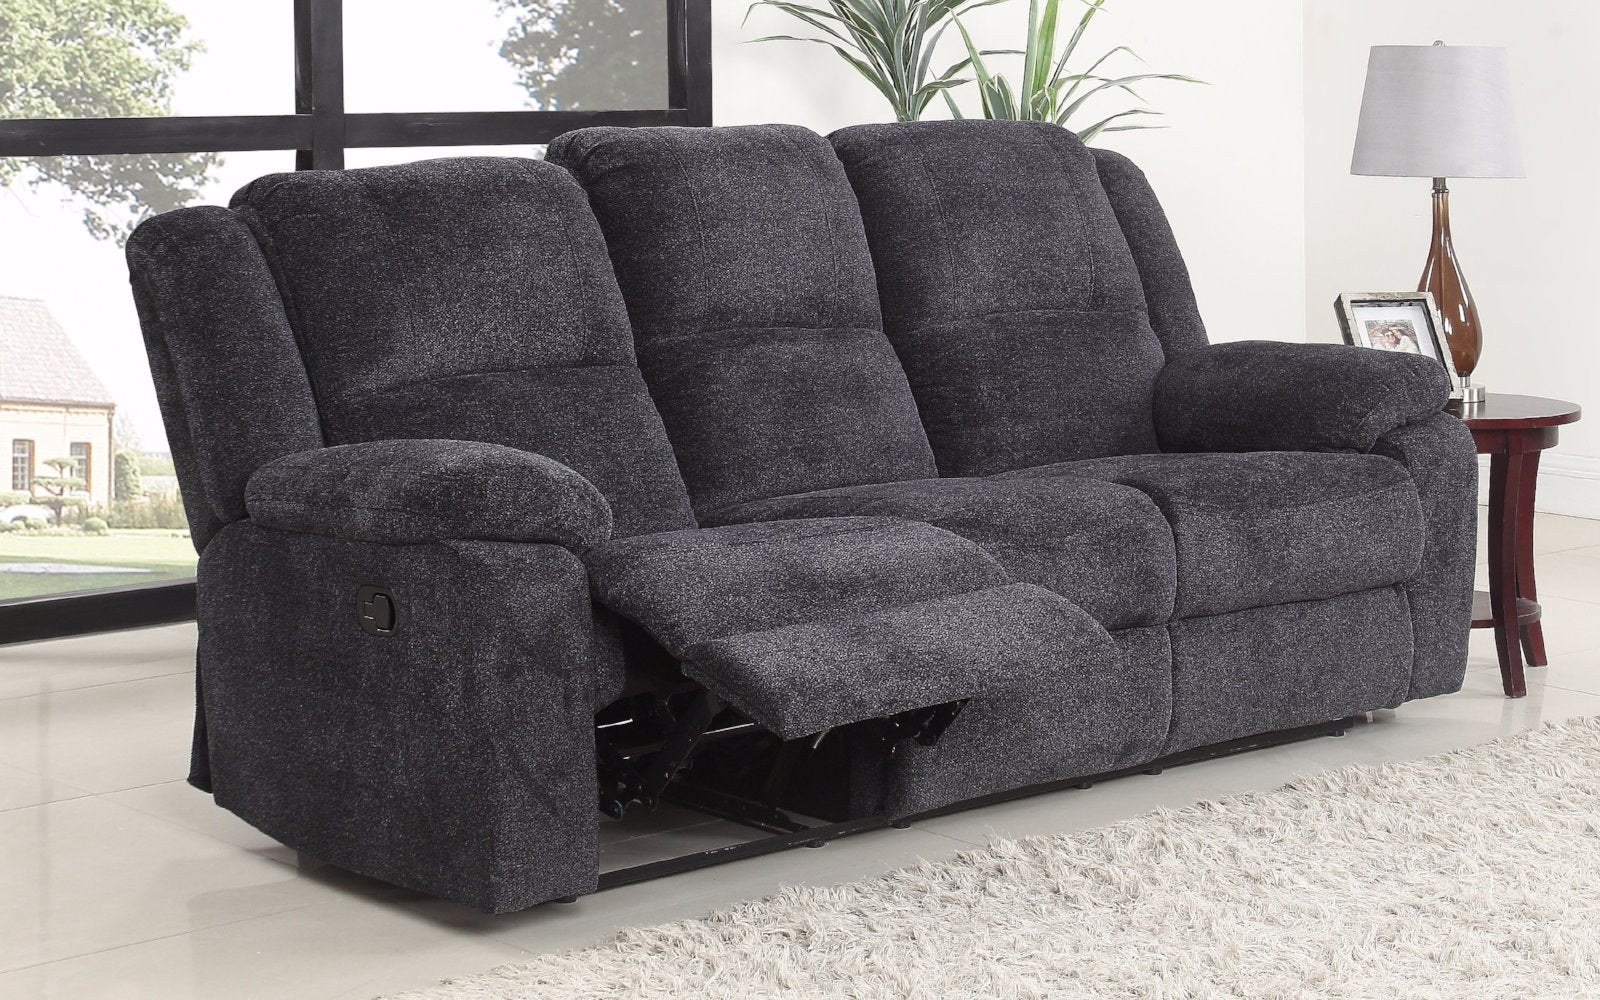 Asturias Traditional Classic Microfiber Double Recliner  : REC26 FB DGY 3S STG from www.sofamania.com size 1600 x 1000 jpeg 410kB